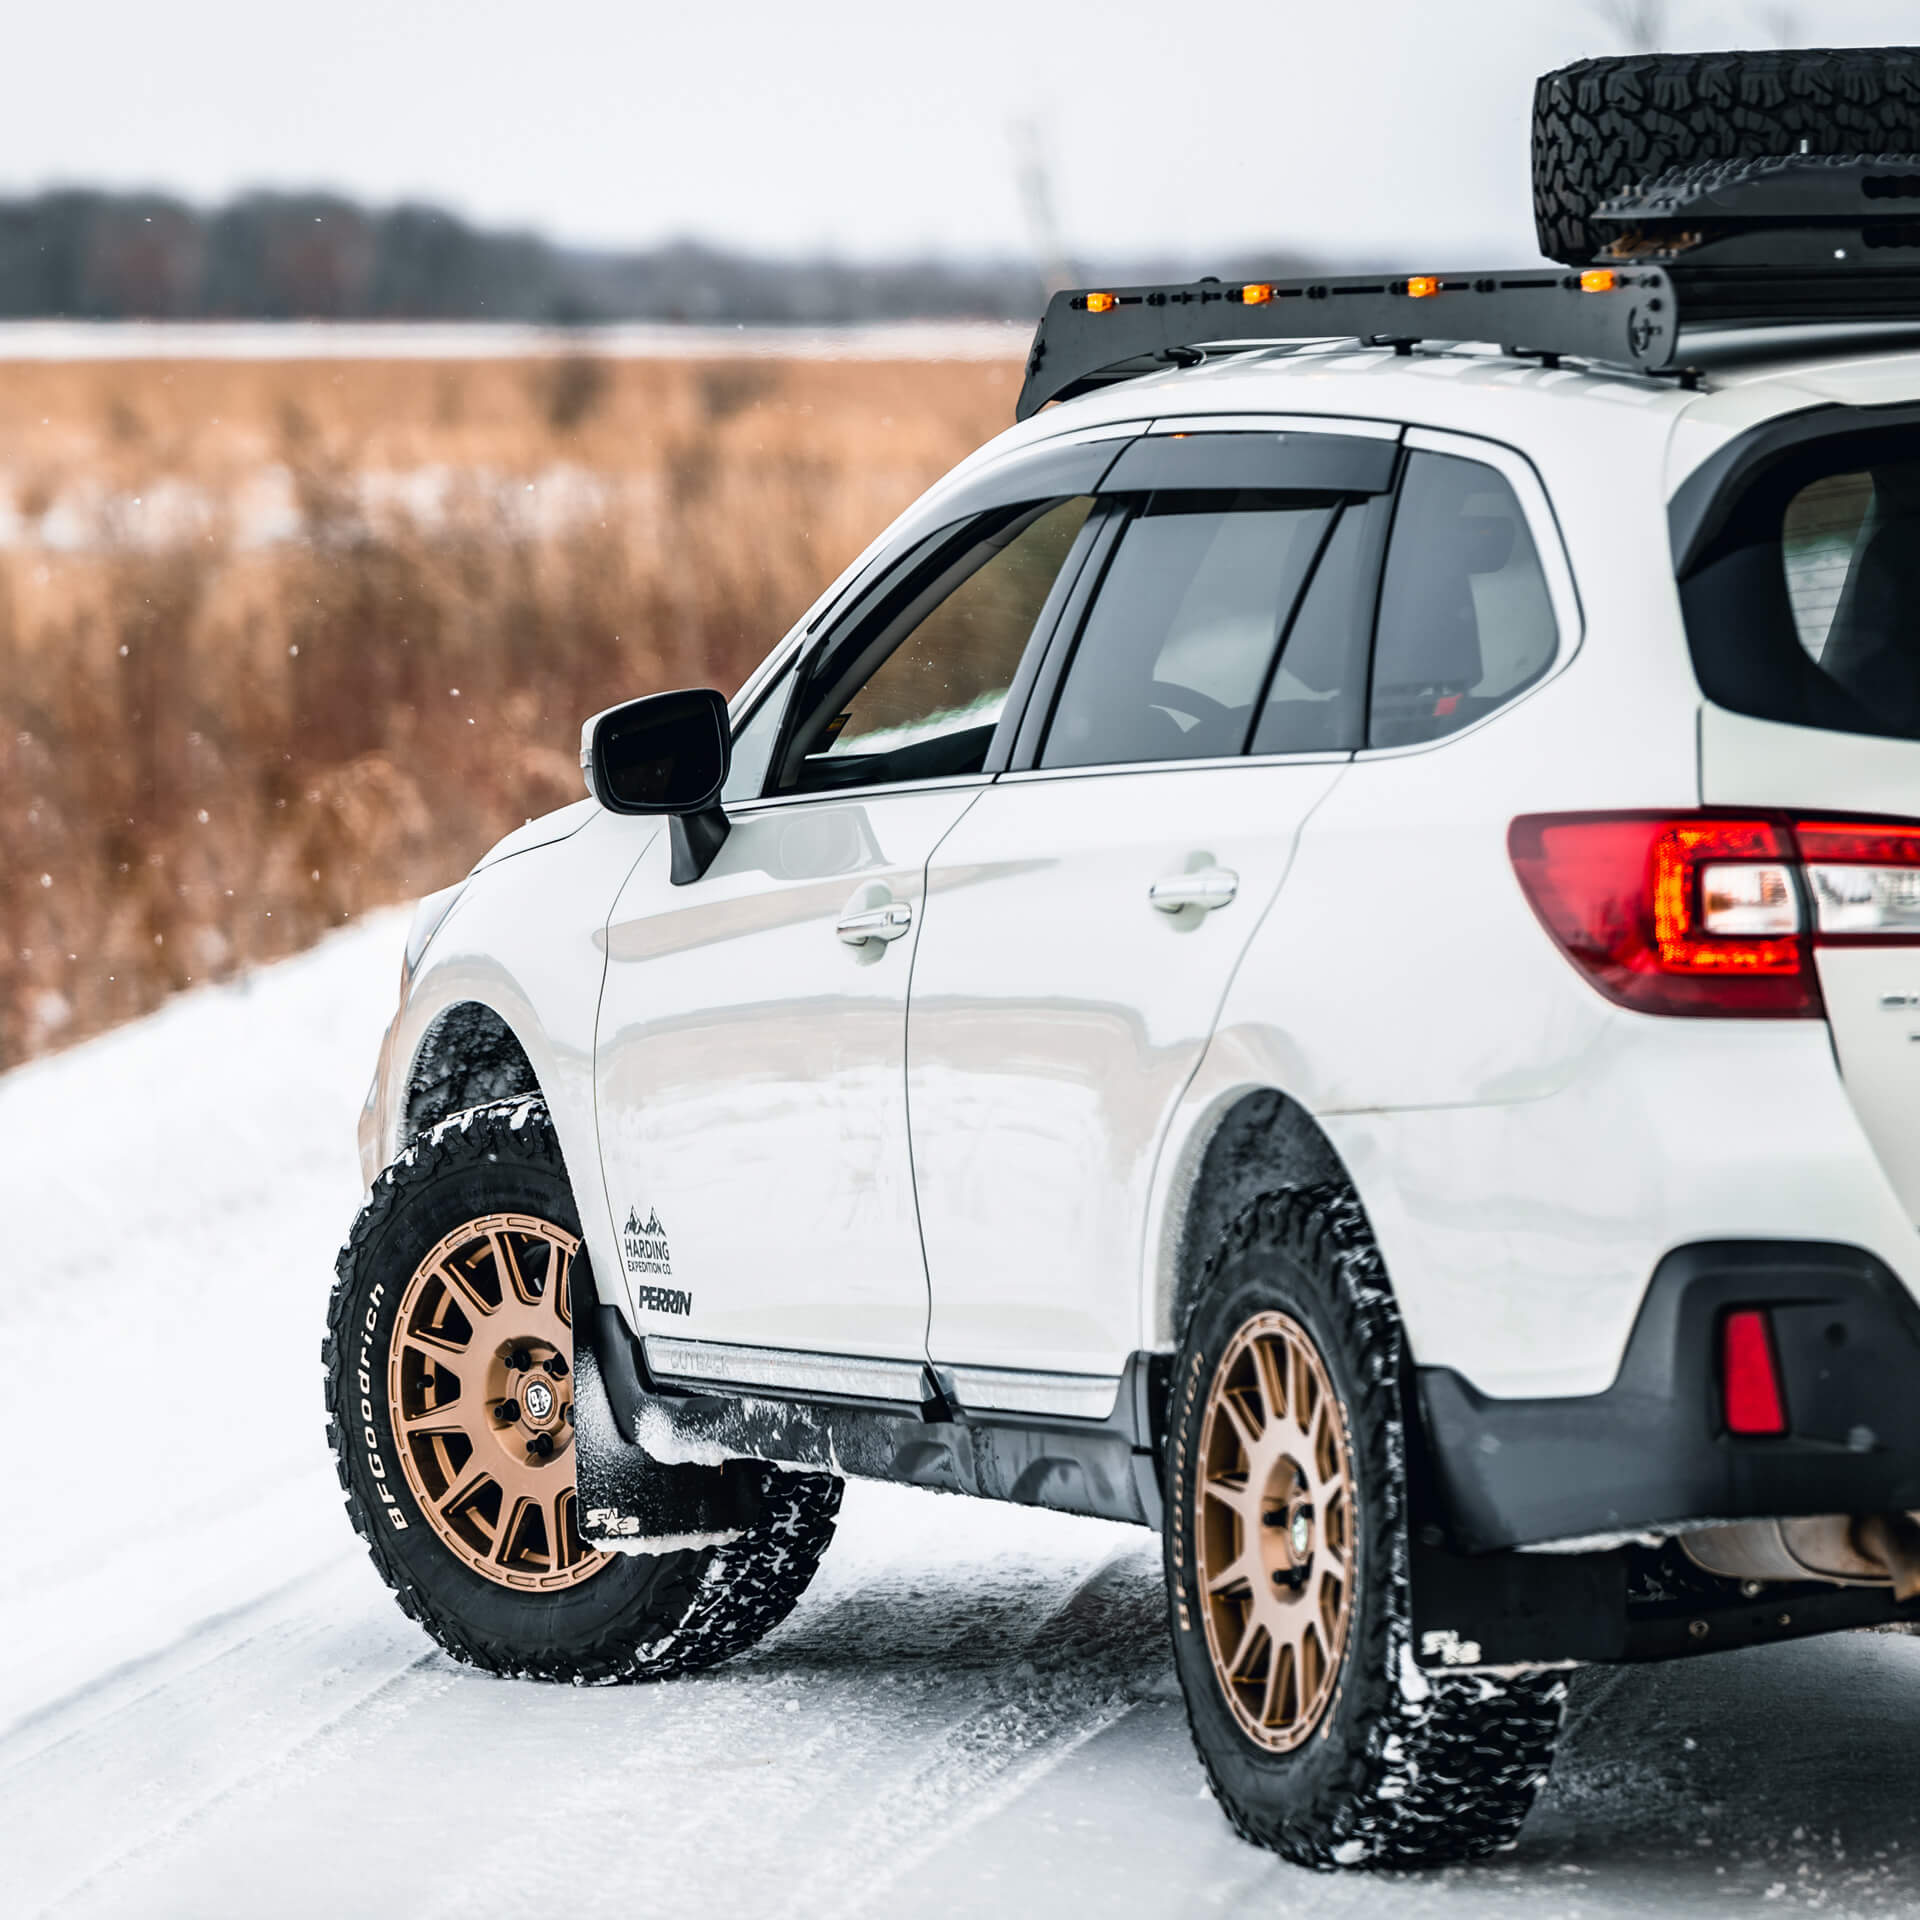 Lifted 2019 Subaru Outback With Overland-Style Mods & Upgrades